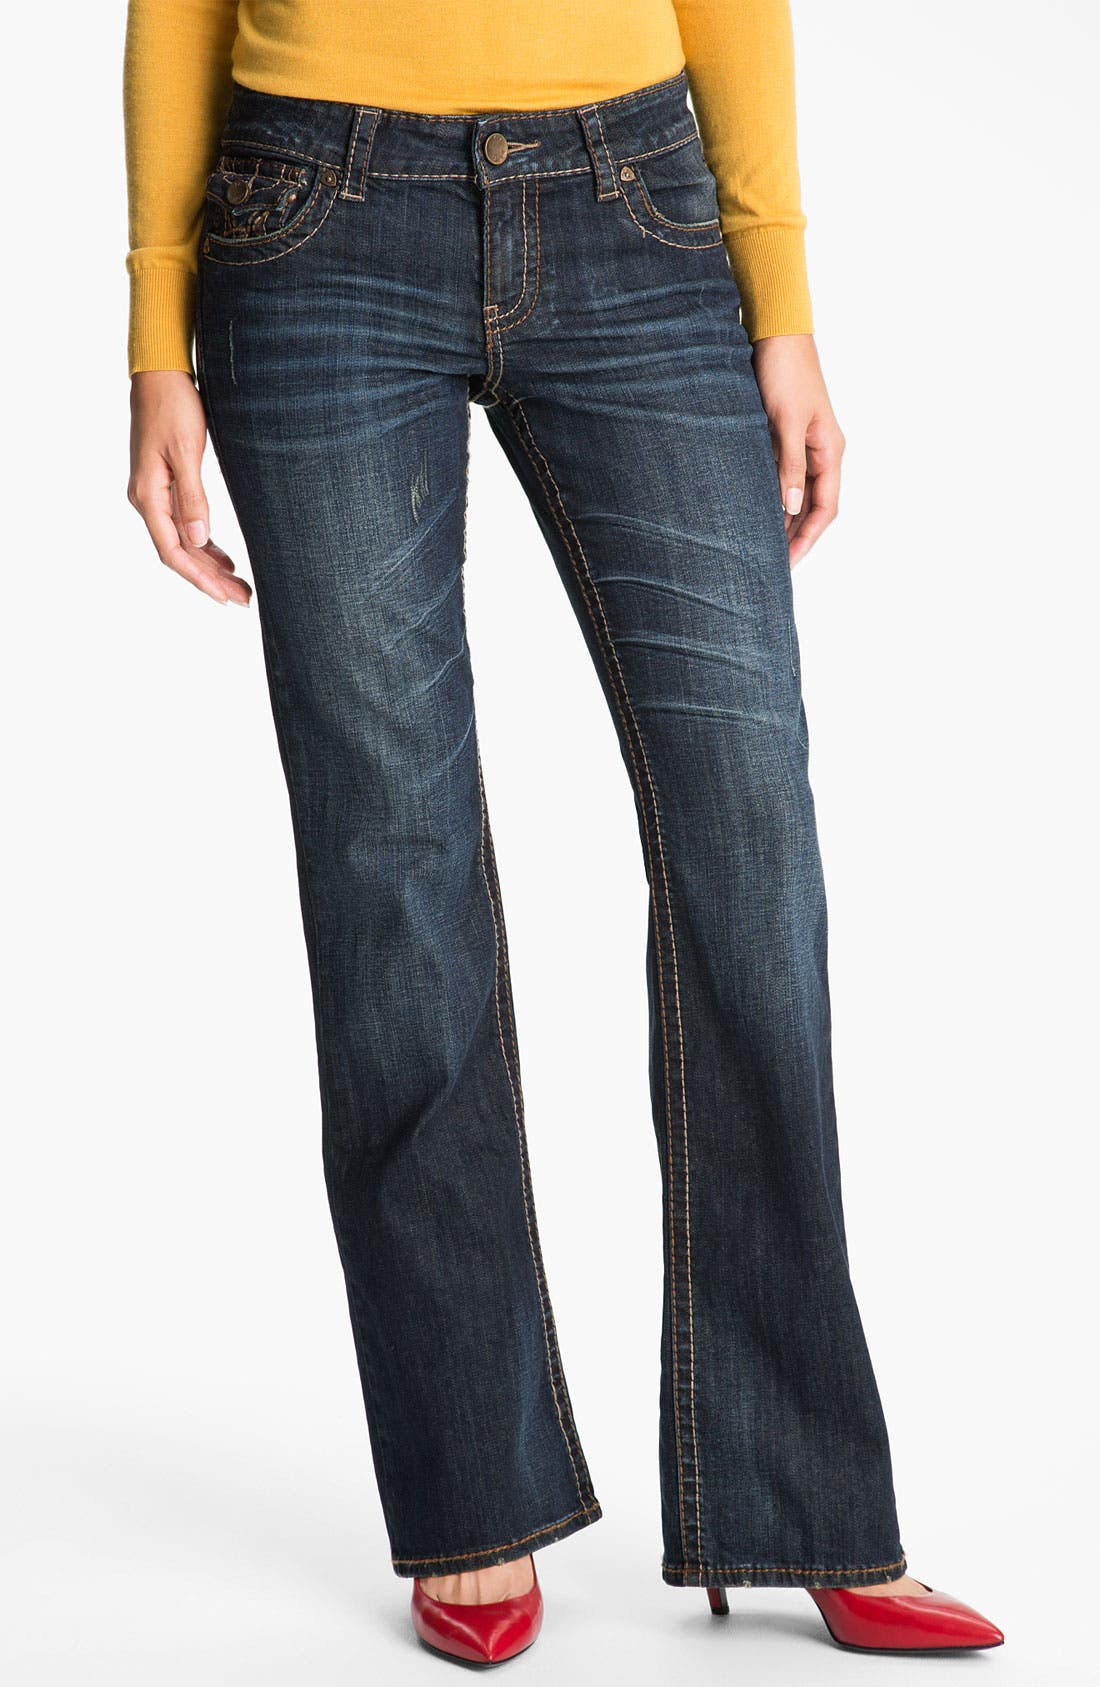 Alternate Image 1 Selected - KUT from the Kloth 'Kate' Bootcut Jeans (Proud) (Online Only)